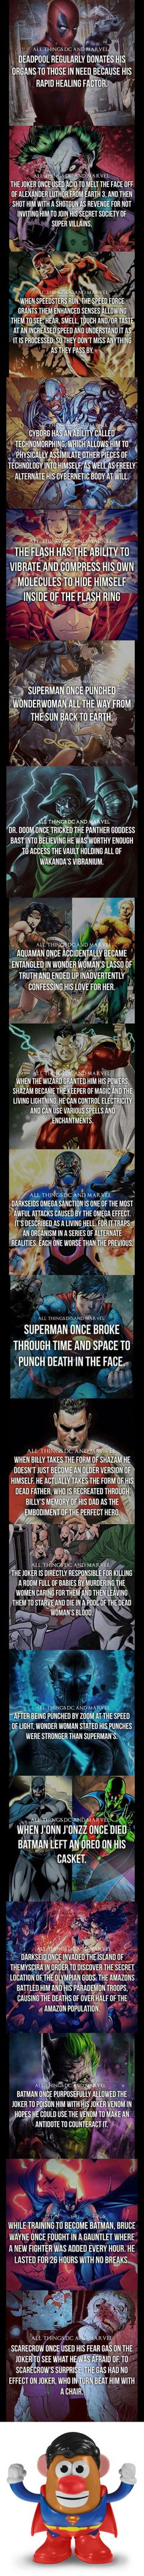 Some superhero/supervillain facts - 9GAG